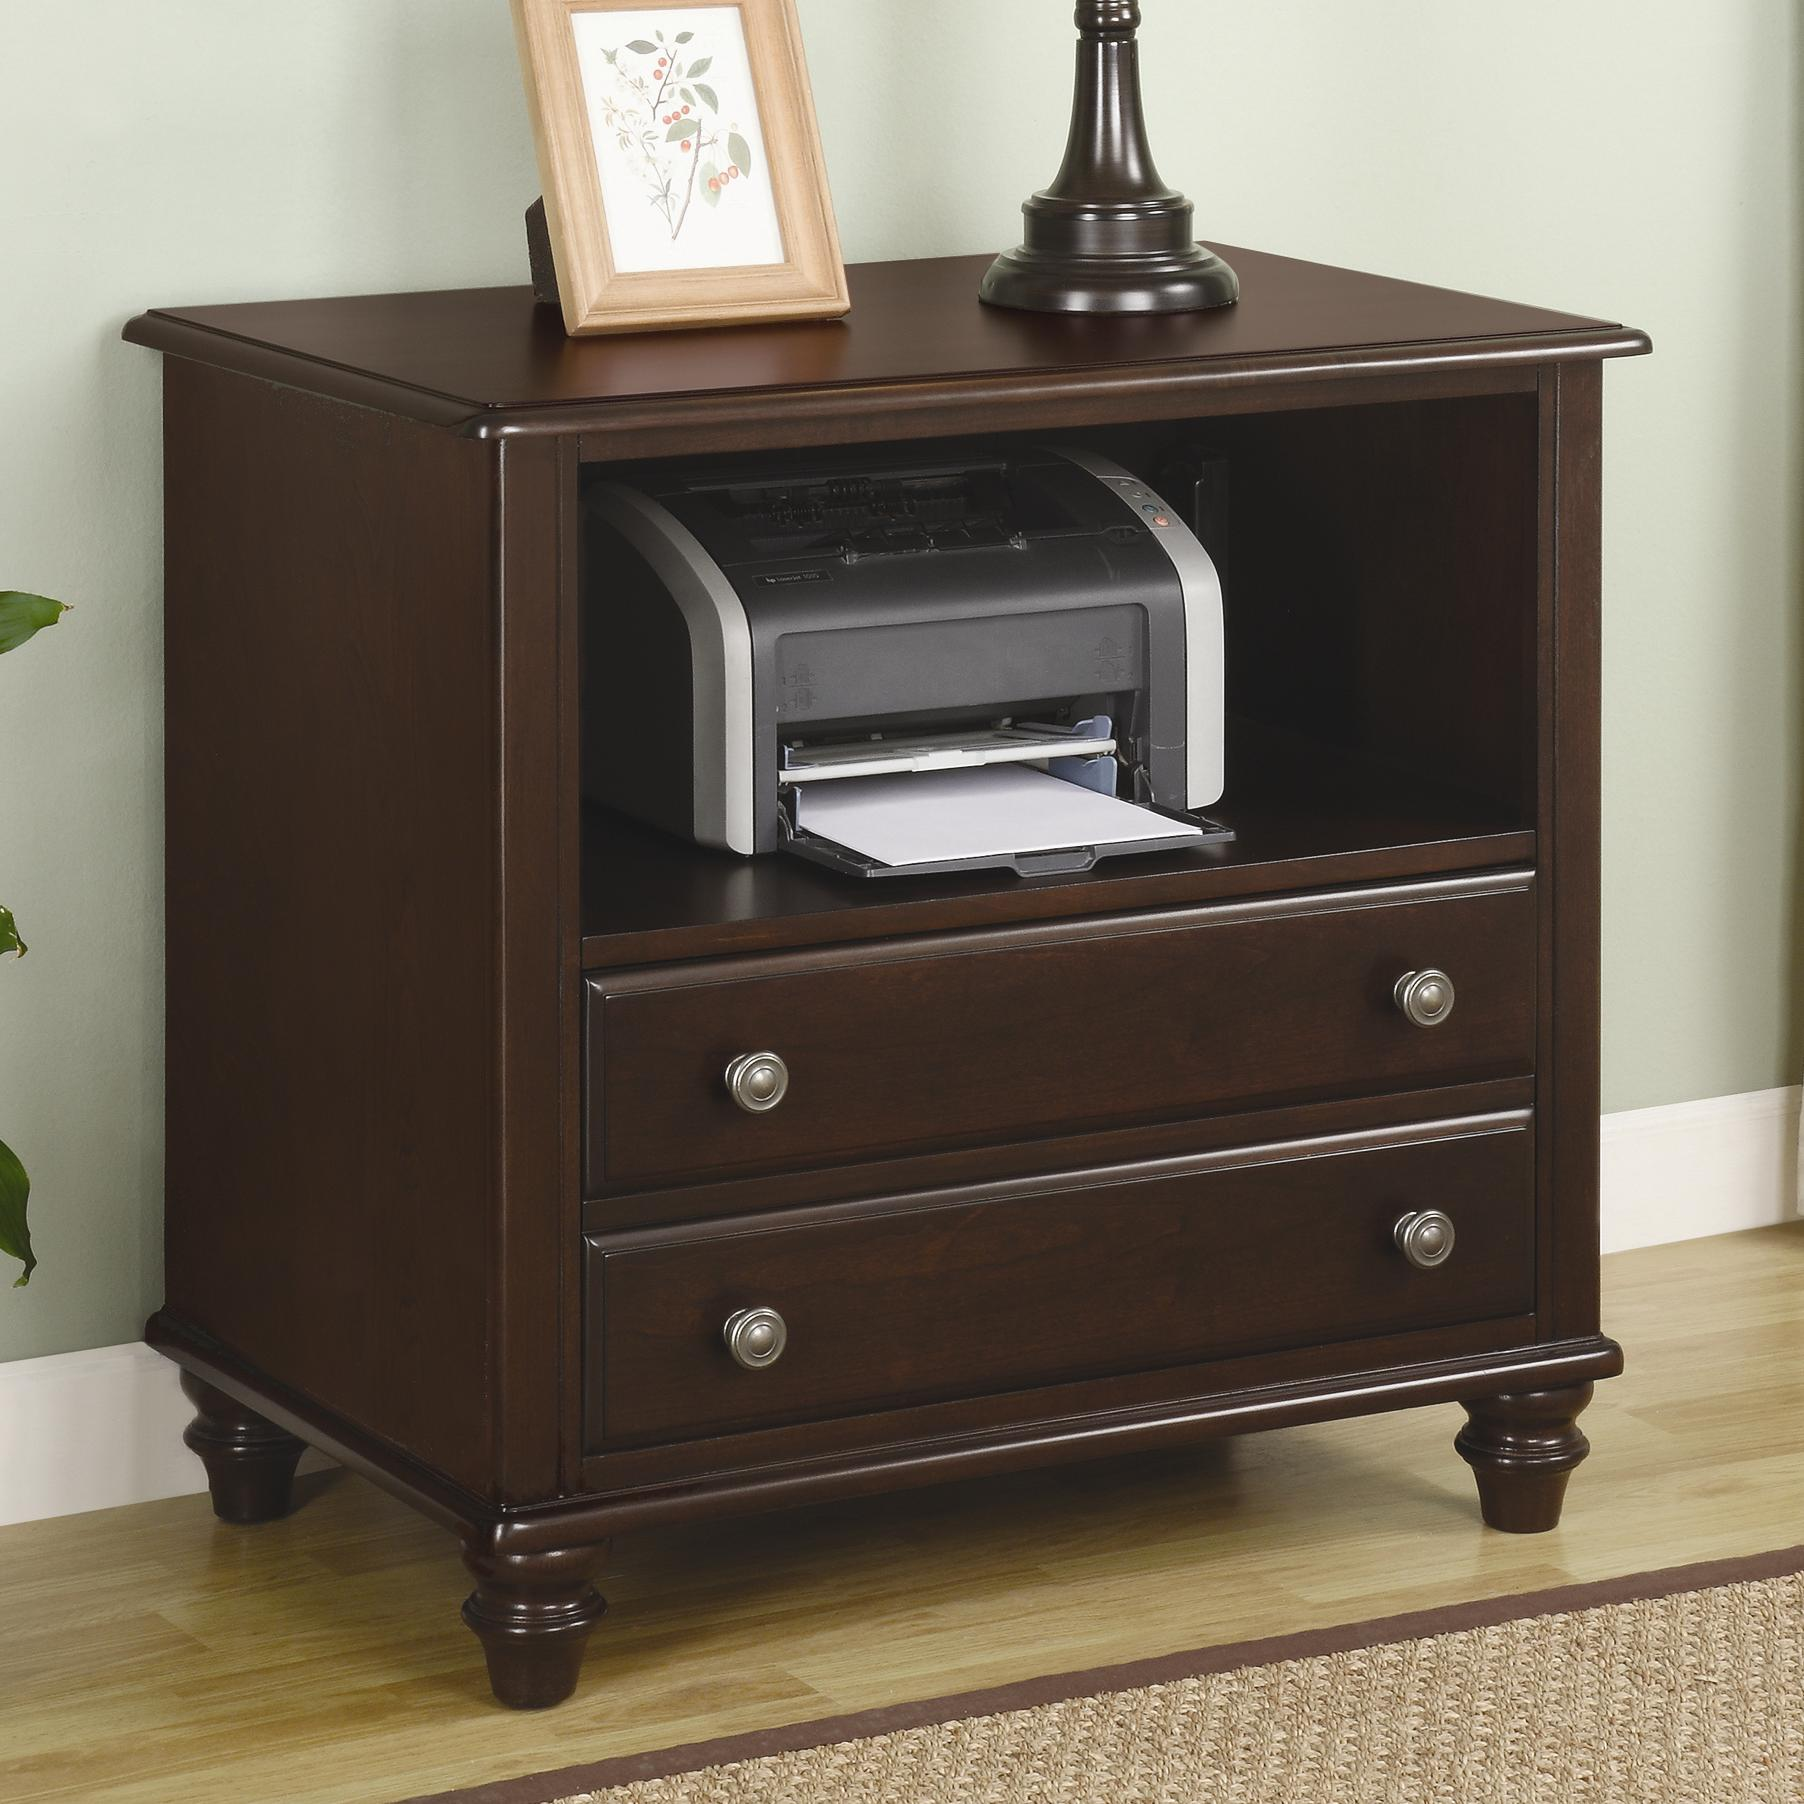 cabinet hammary treasures awesome filing cabinets by printers hidden drawer fresh of furniture elegant design printer